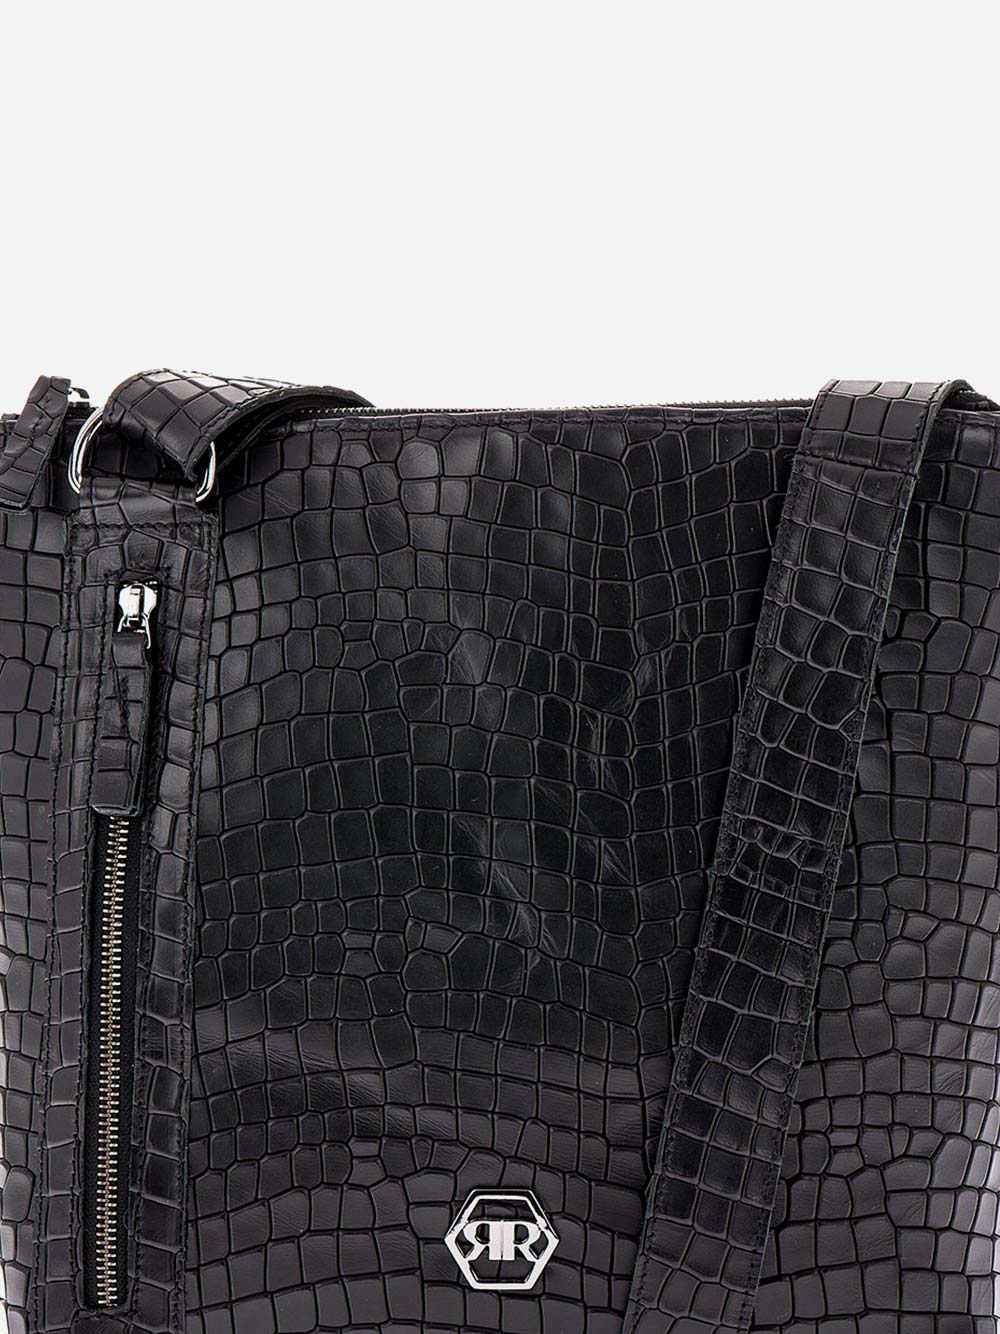 Black Croc Effect Squared Crossbody